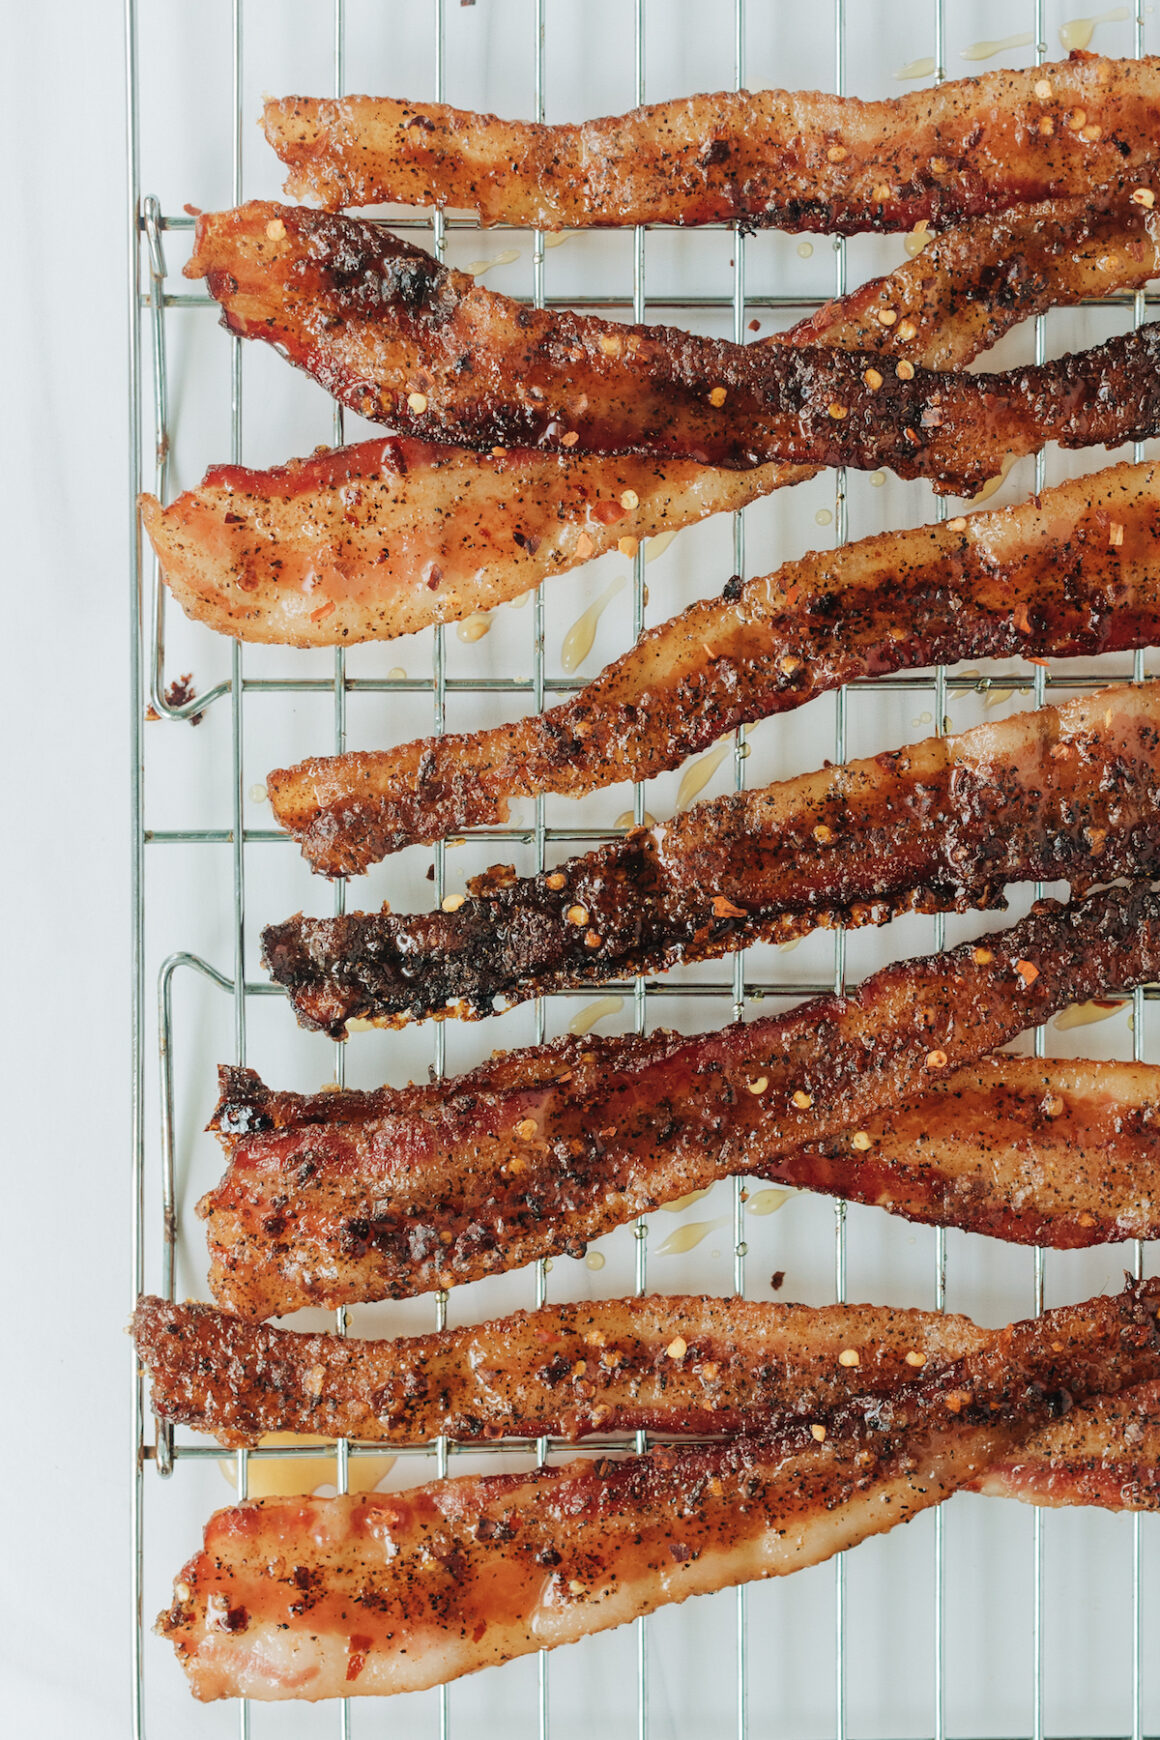 Crispy candied bacon with red pepper flakes on a baking rack